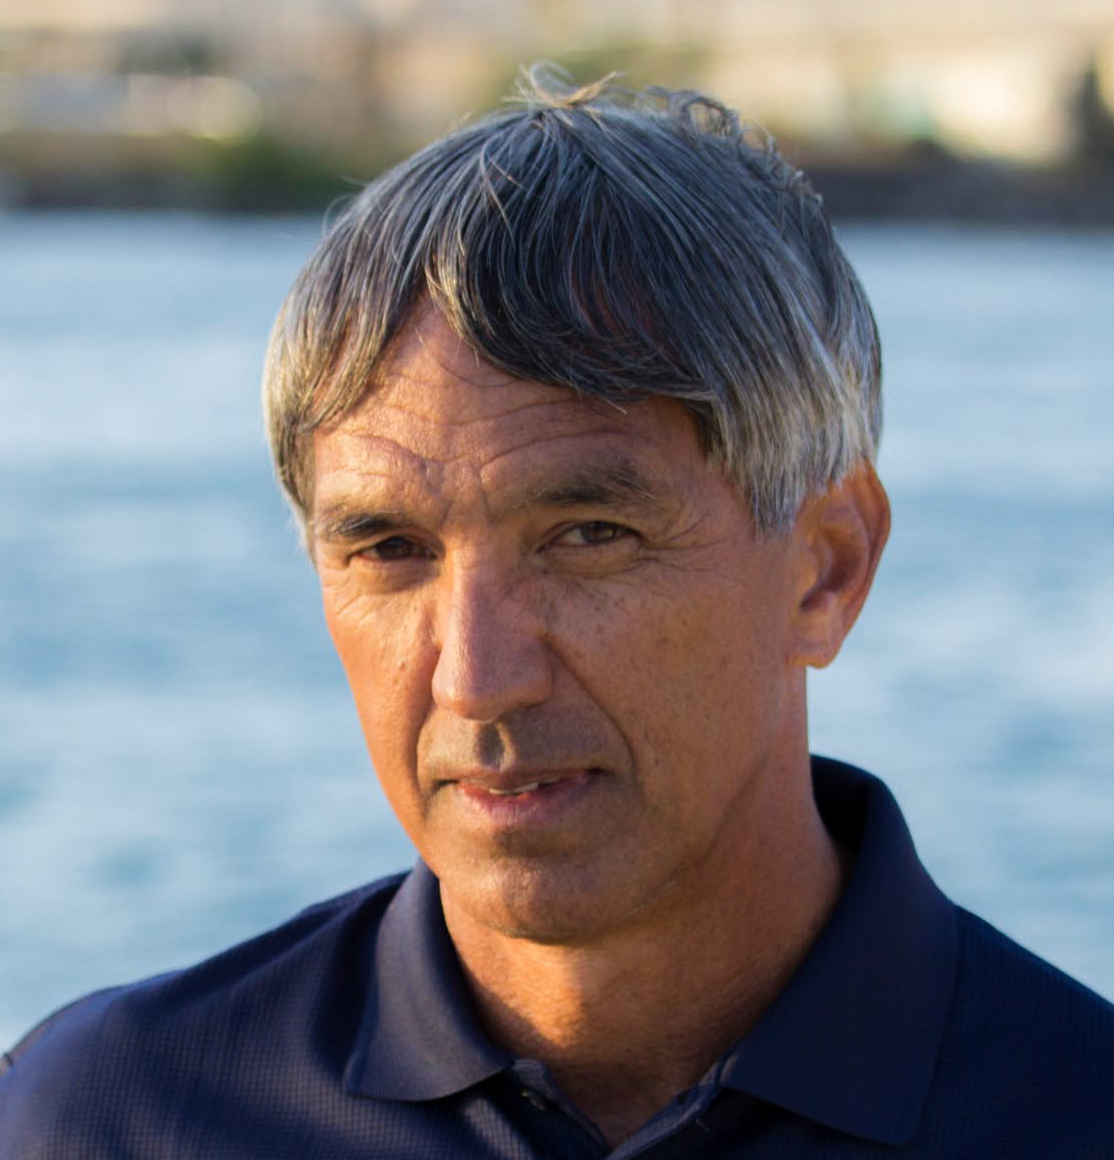 Nainoa_Thompson.jpg